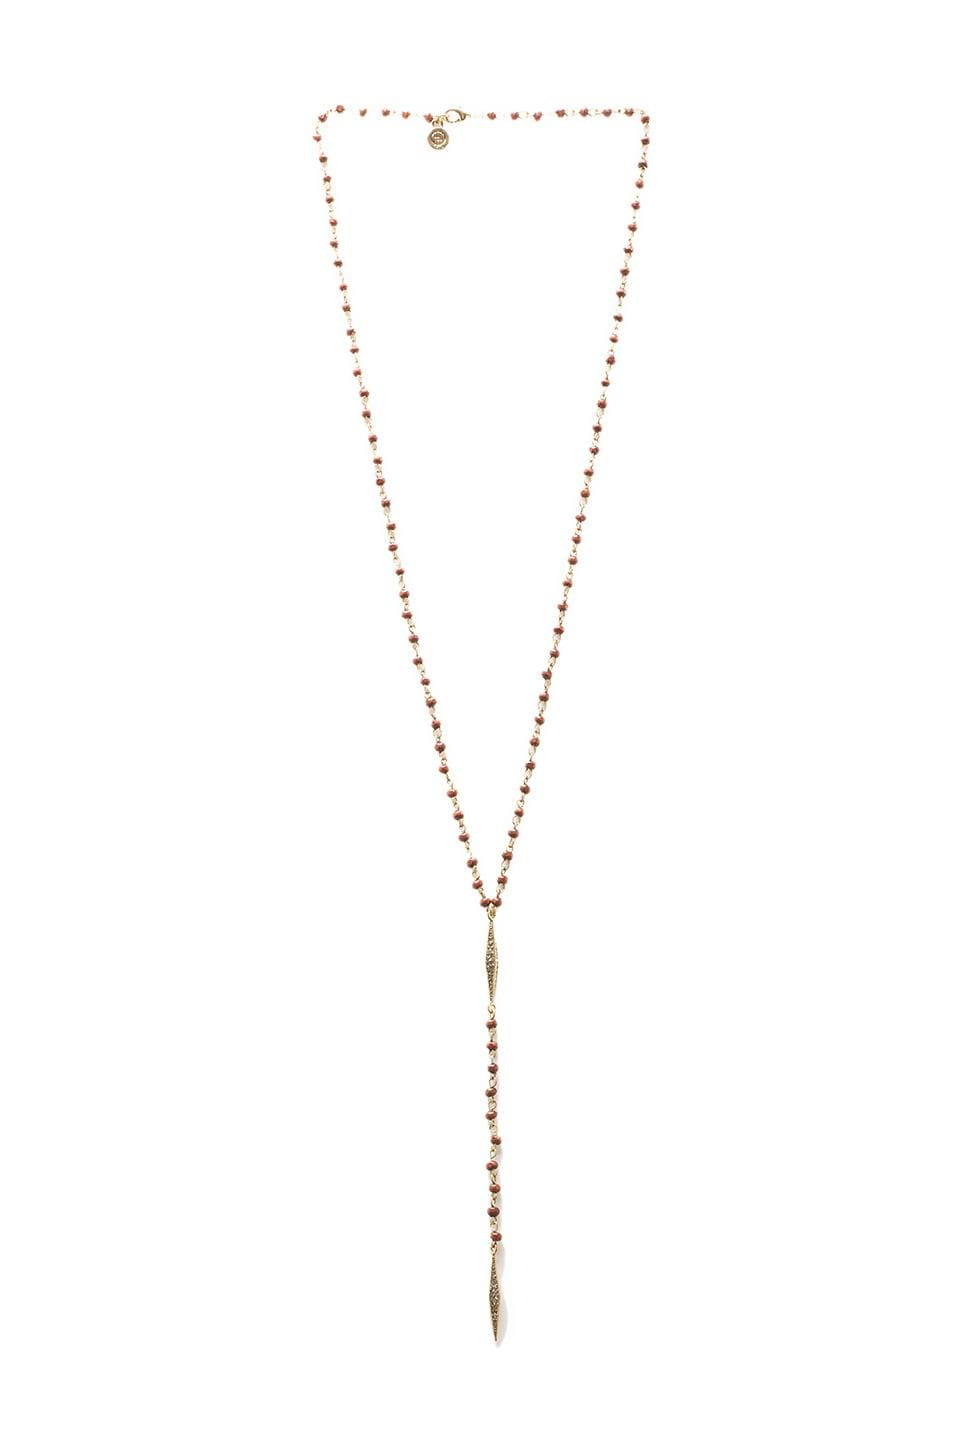 House of Harlow Wooden Kharma Bead Necklace in Gold